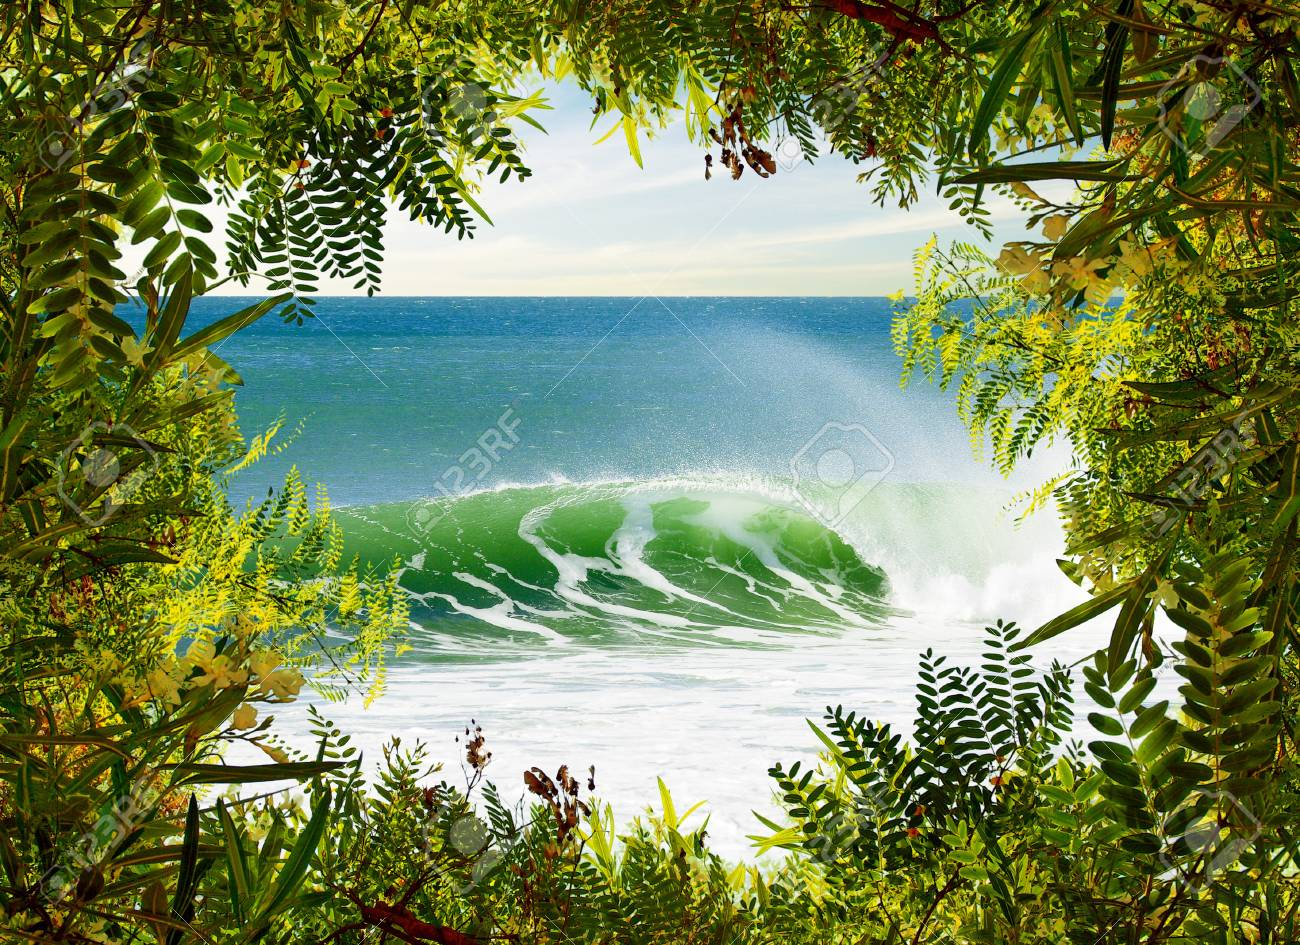 Idyllic Landscape Of A Perfect Surfing Wave Framed With Green ...